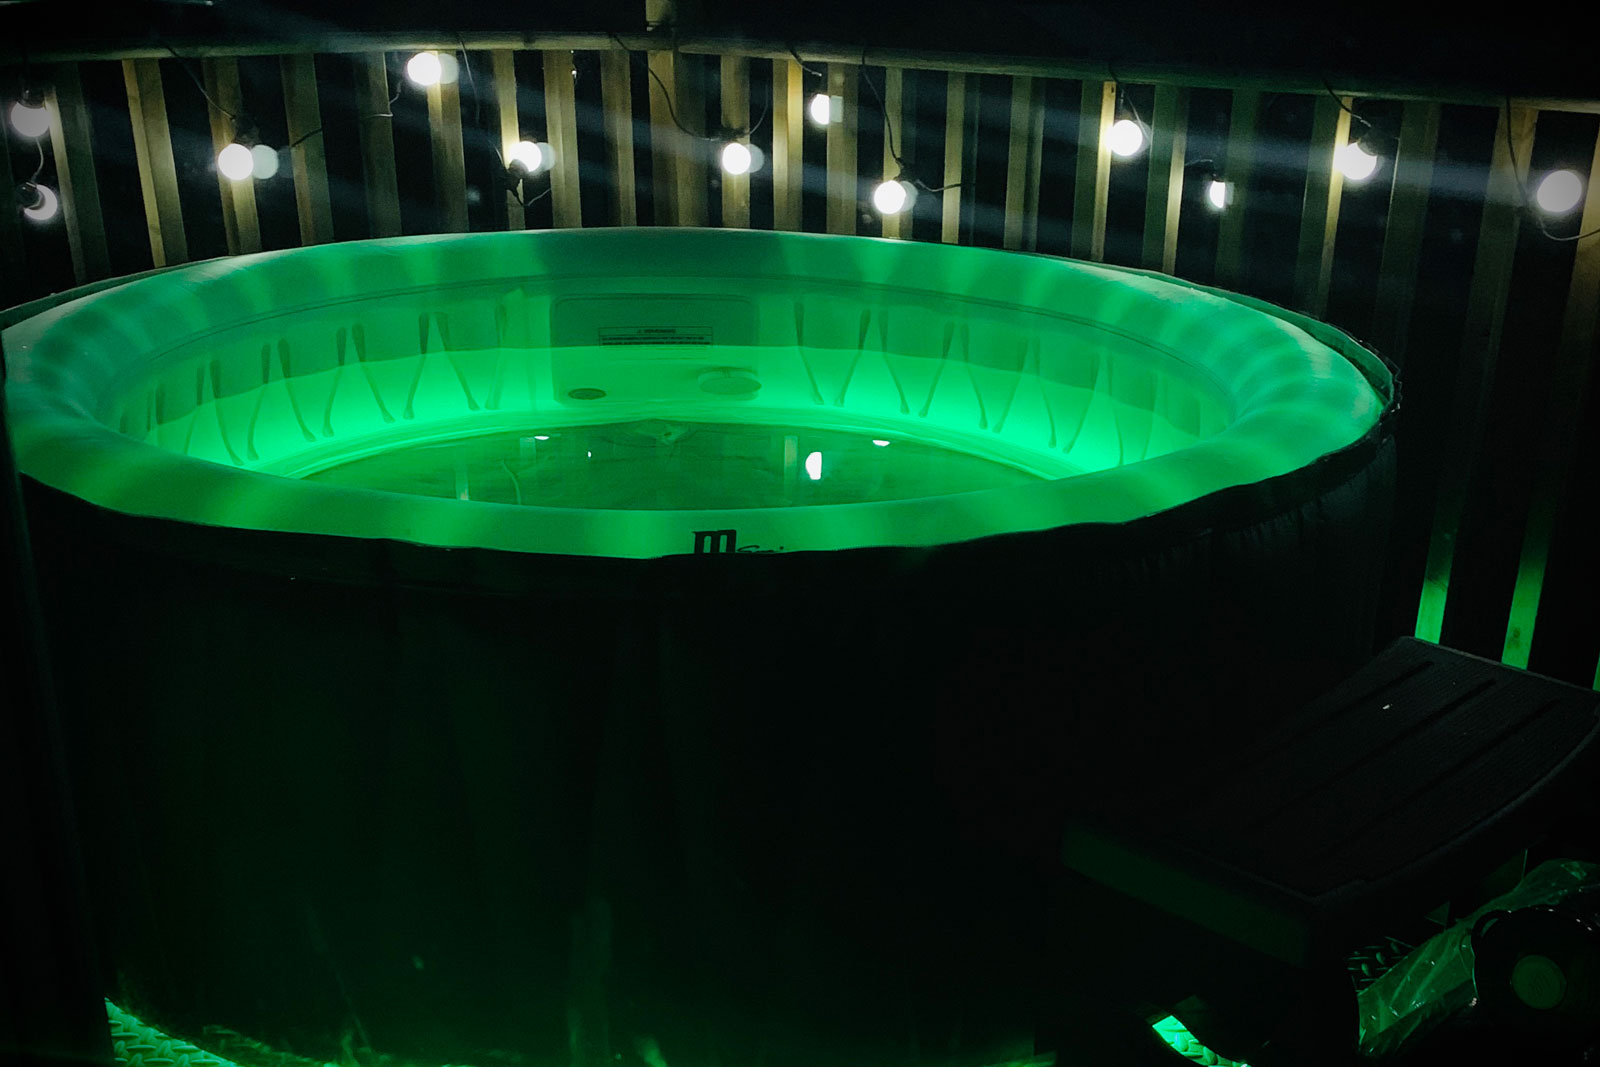 hot tub at night with green light